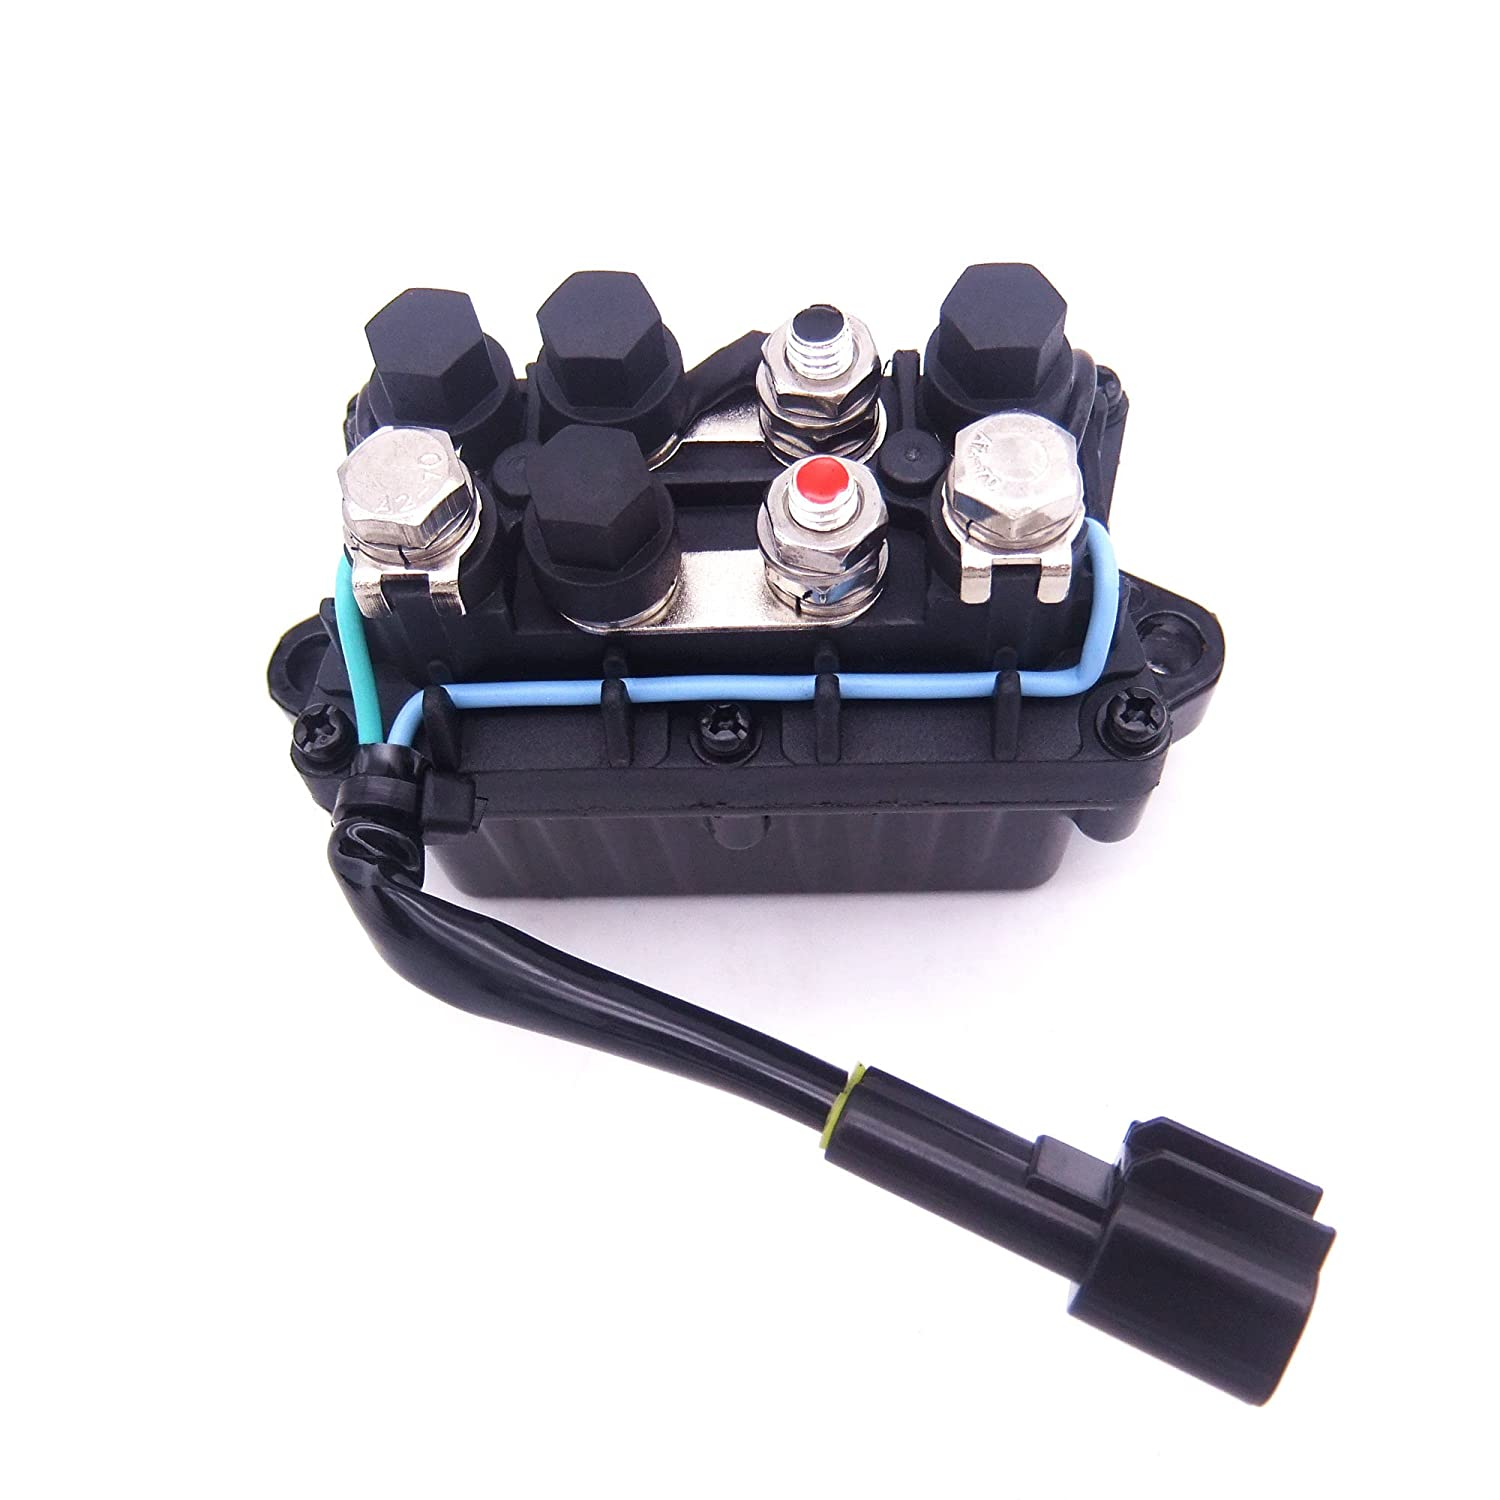 Relay Assy 63p 81950 00 For Yamaha Outboard Motors 4 90hp 2 Stroke Wiring Diagram Engine F 20hp 250hp Sports Outdoors